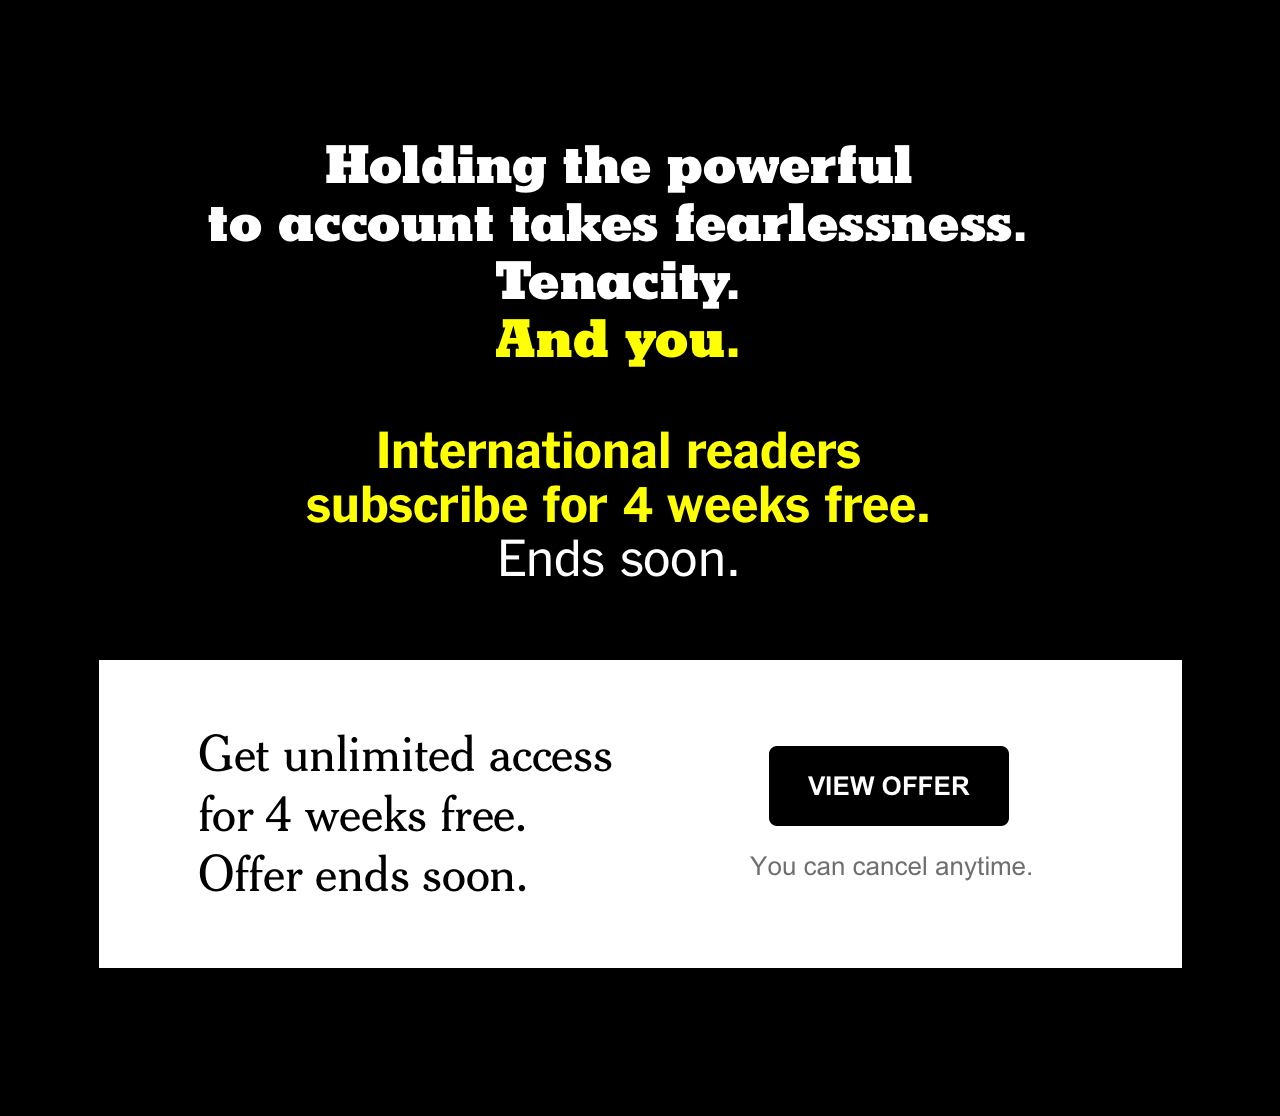 Holding the powerful to account takes fearlessness. Tenacity. And you. International Readers subscribe for 4 weeks free. Ends soon.